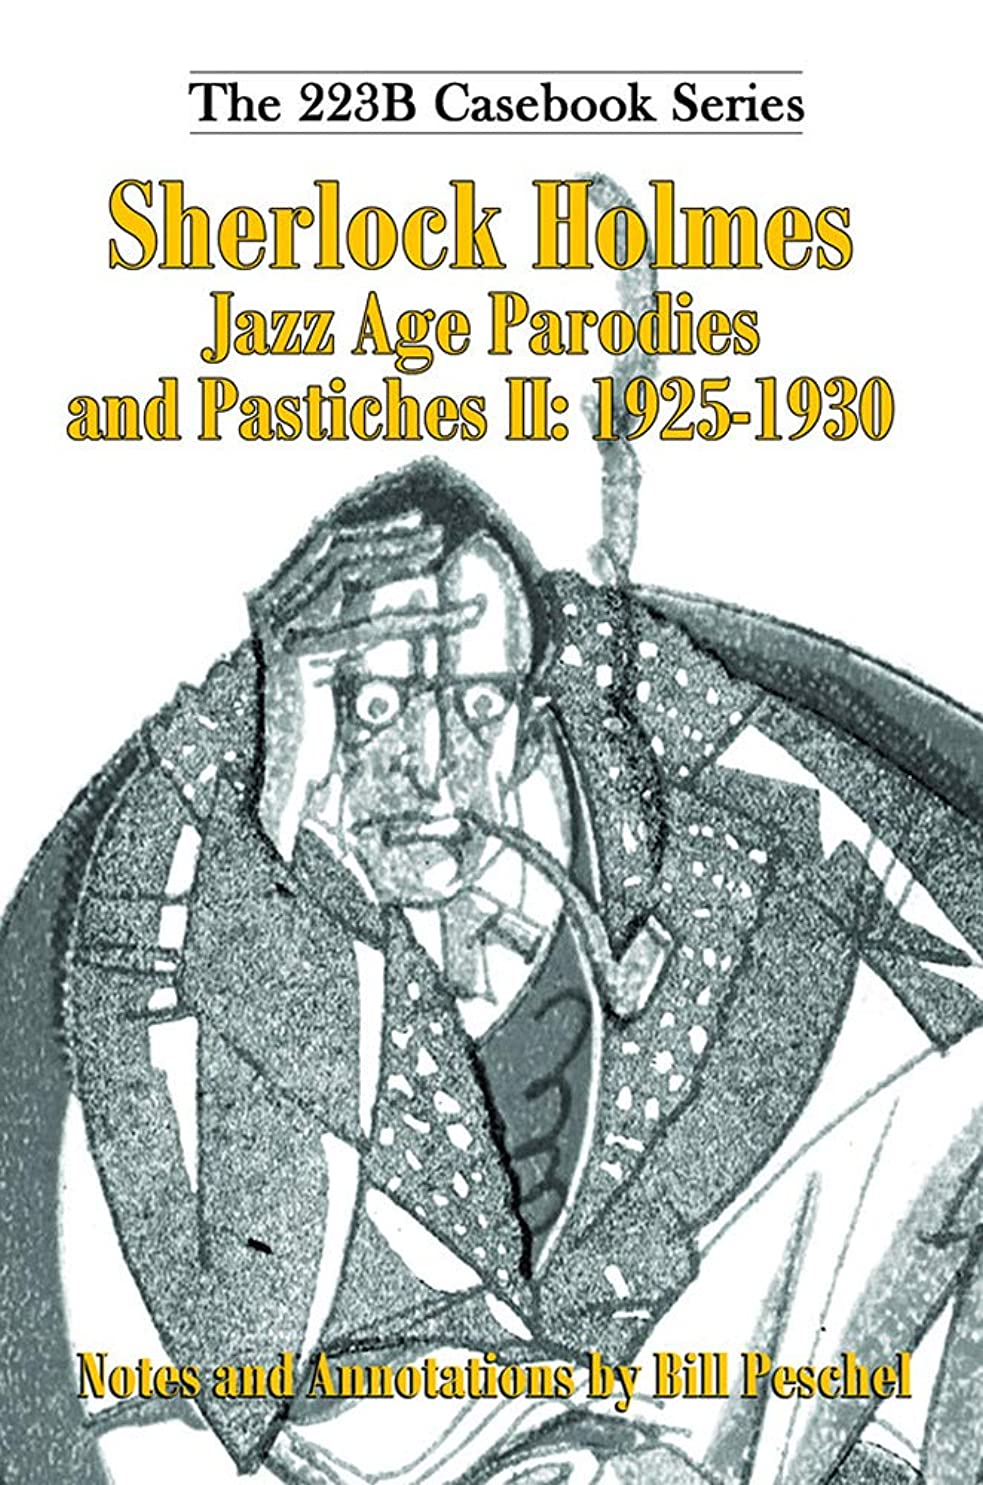 遠近法祖母曖昧なSherlock Holmes Jazz Age Parodies and Pastiches II: 1925-1930 (223B Casebook Book 8) (English Edition)